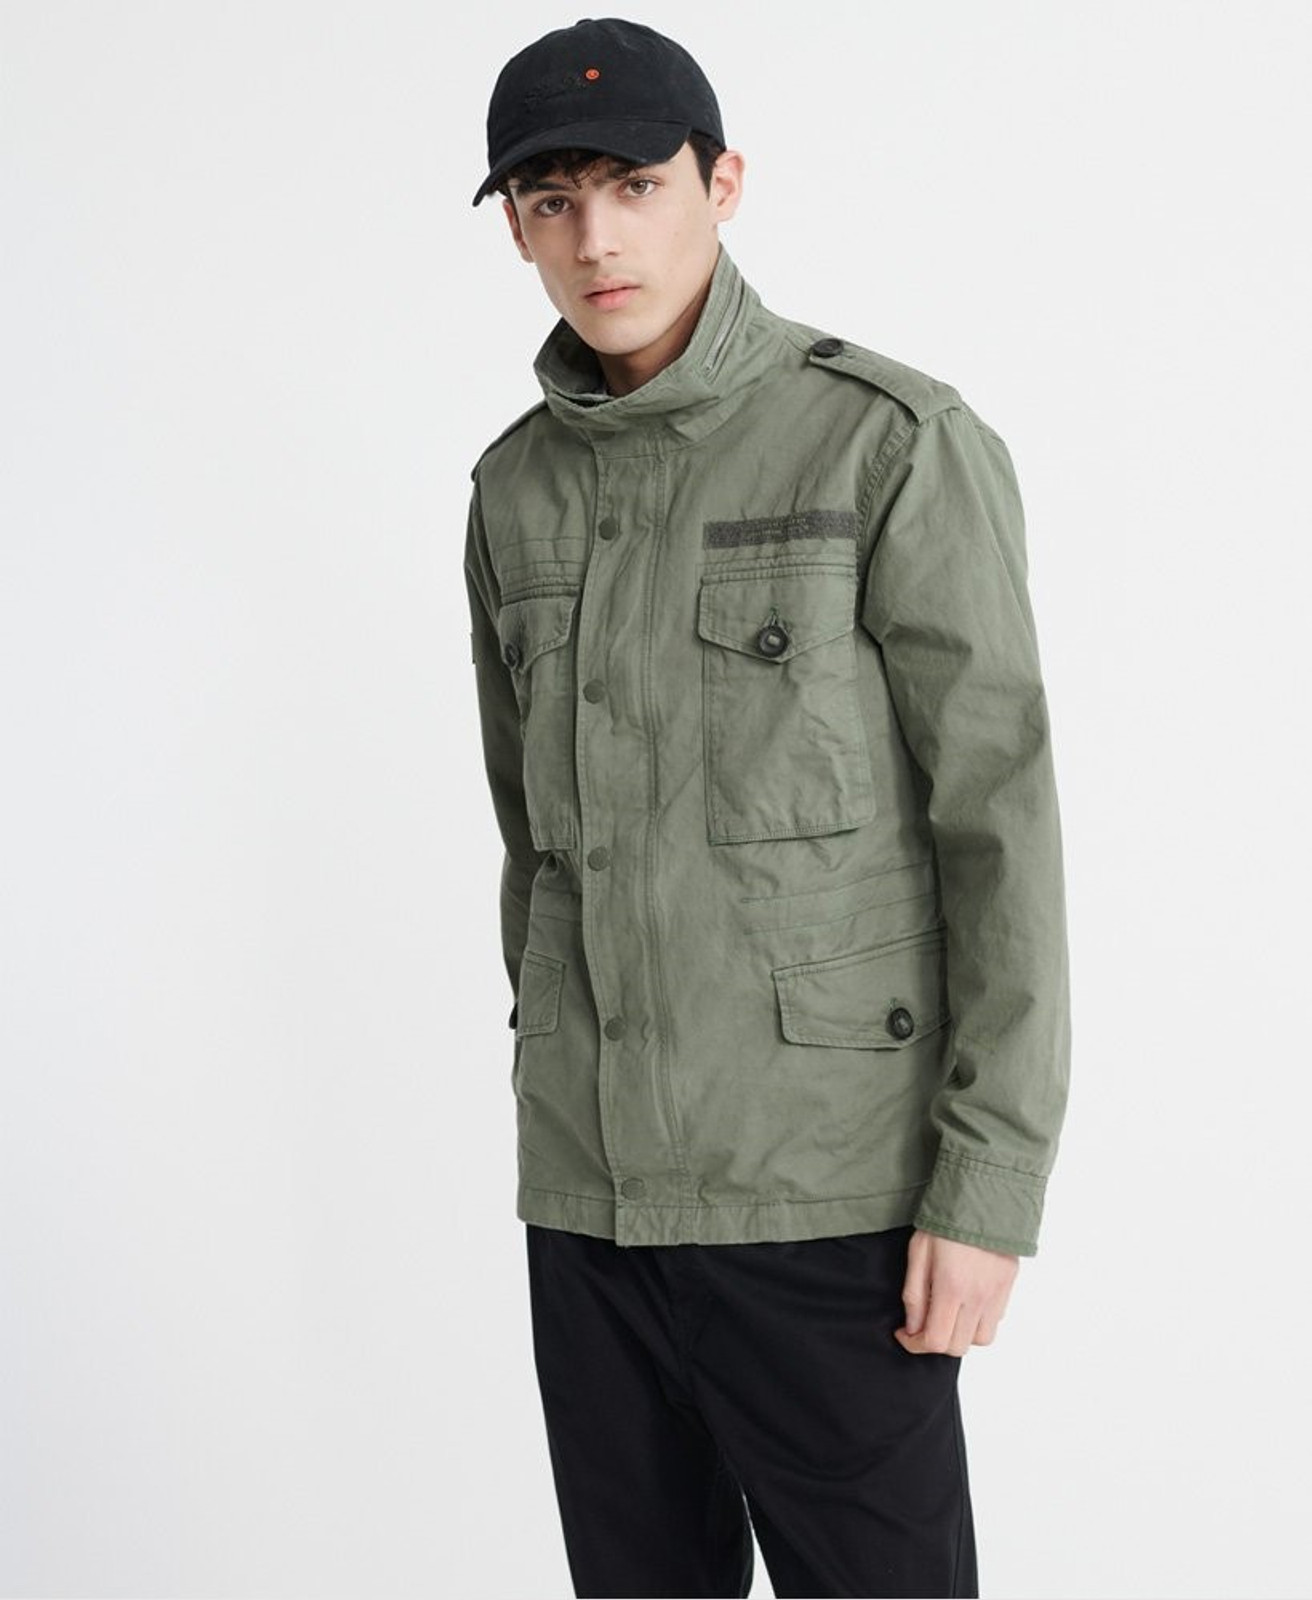 Superdry Mens FIELD JACKET Green Military Jackets 0